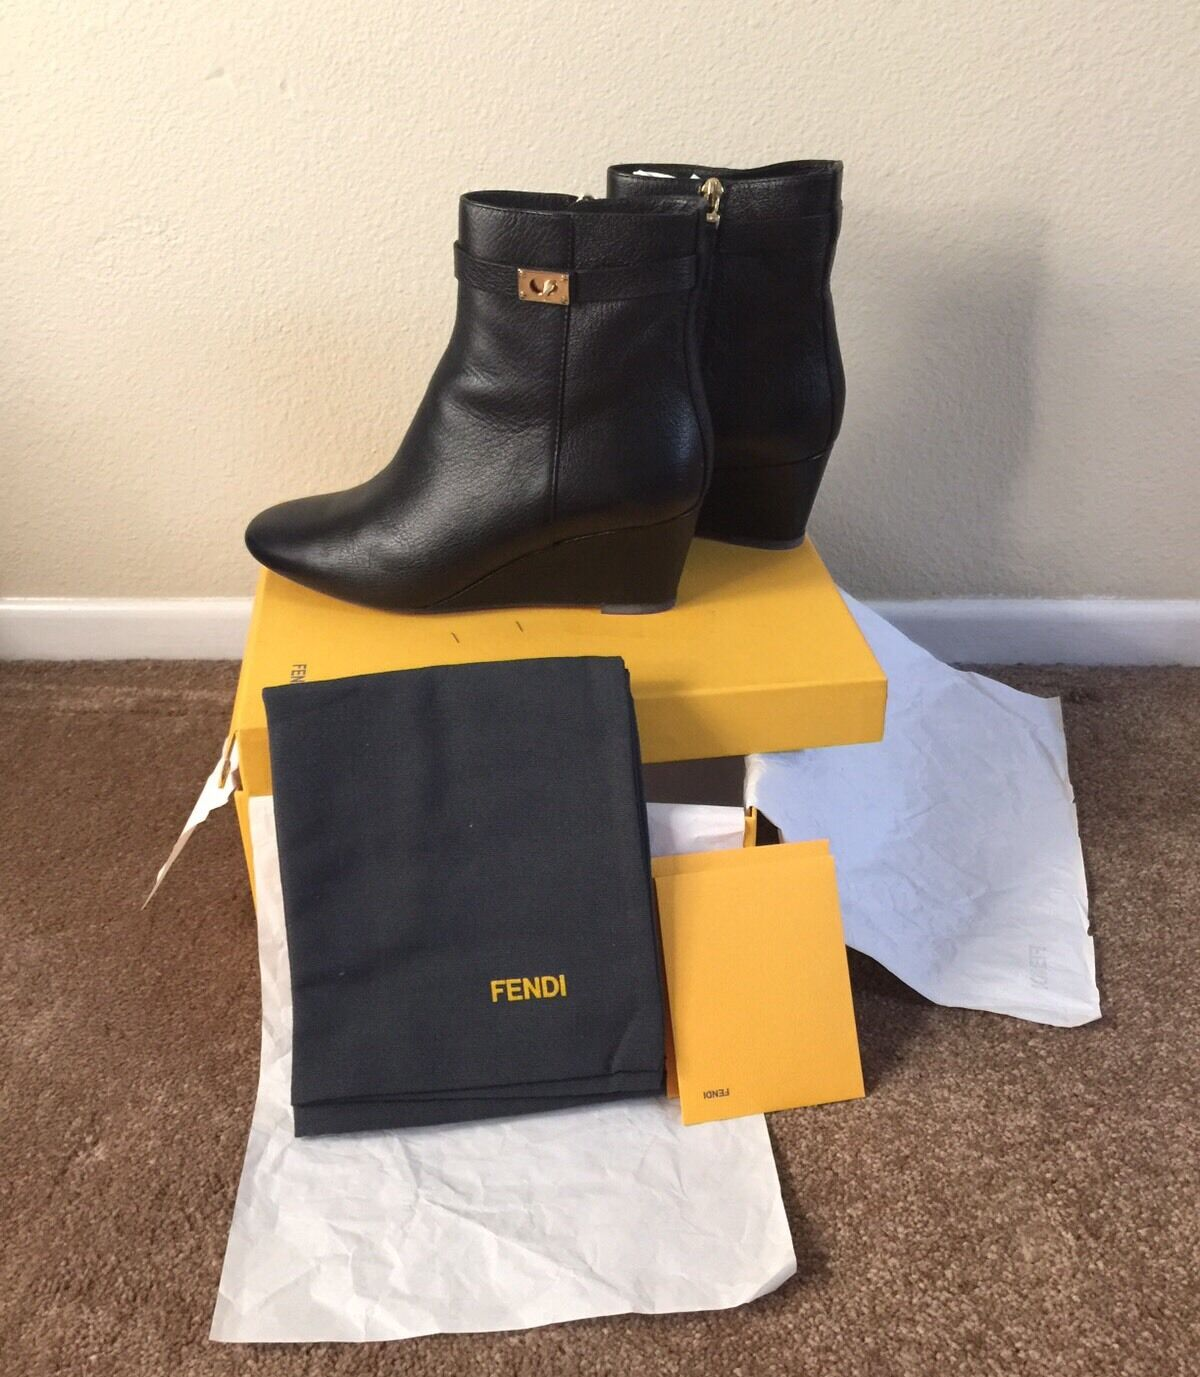 Fendi Goldmine Black Leather Wedge Bootie Ankle Boots US 9